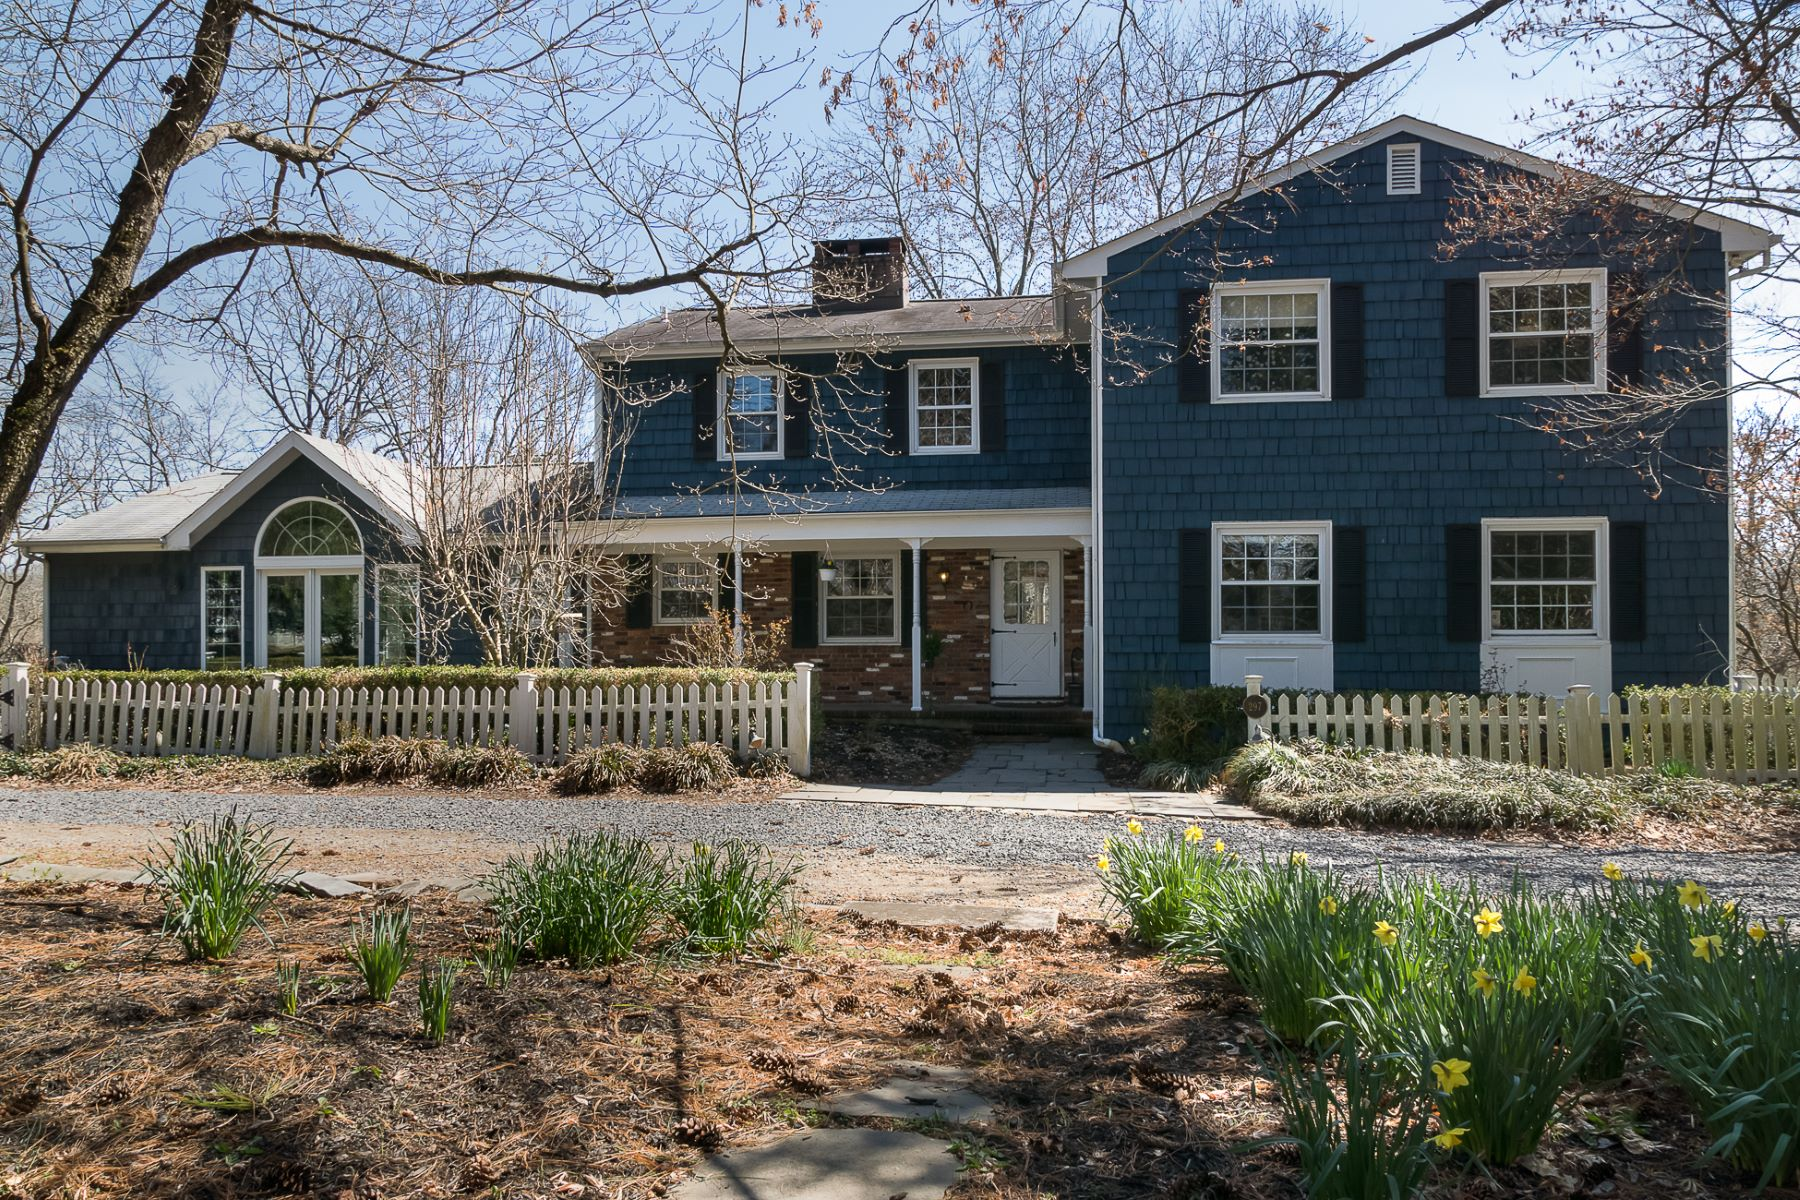 Single Family Homes for Sale at The Relaxed Pace of the Country Life Yet Convenient to All 297 Millstone River Road, Belle Mead, New Jersey 08502 United States